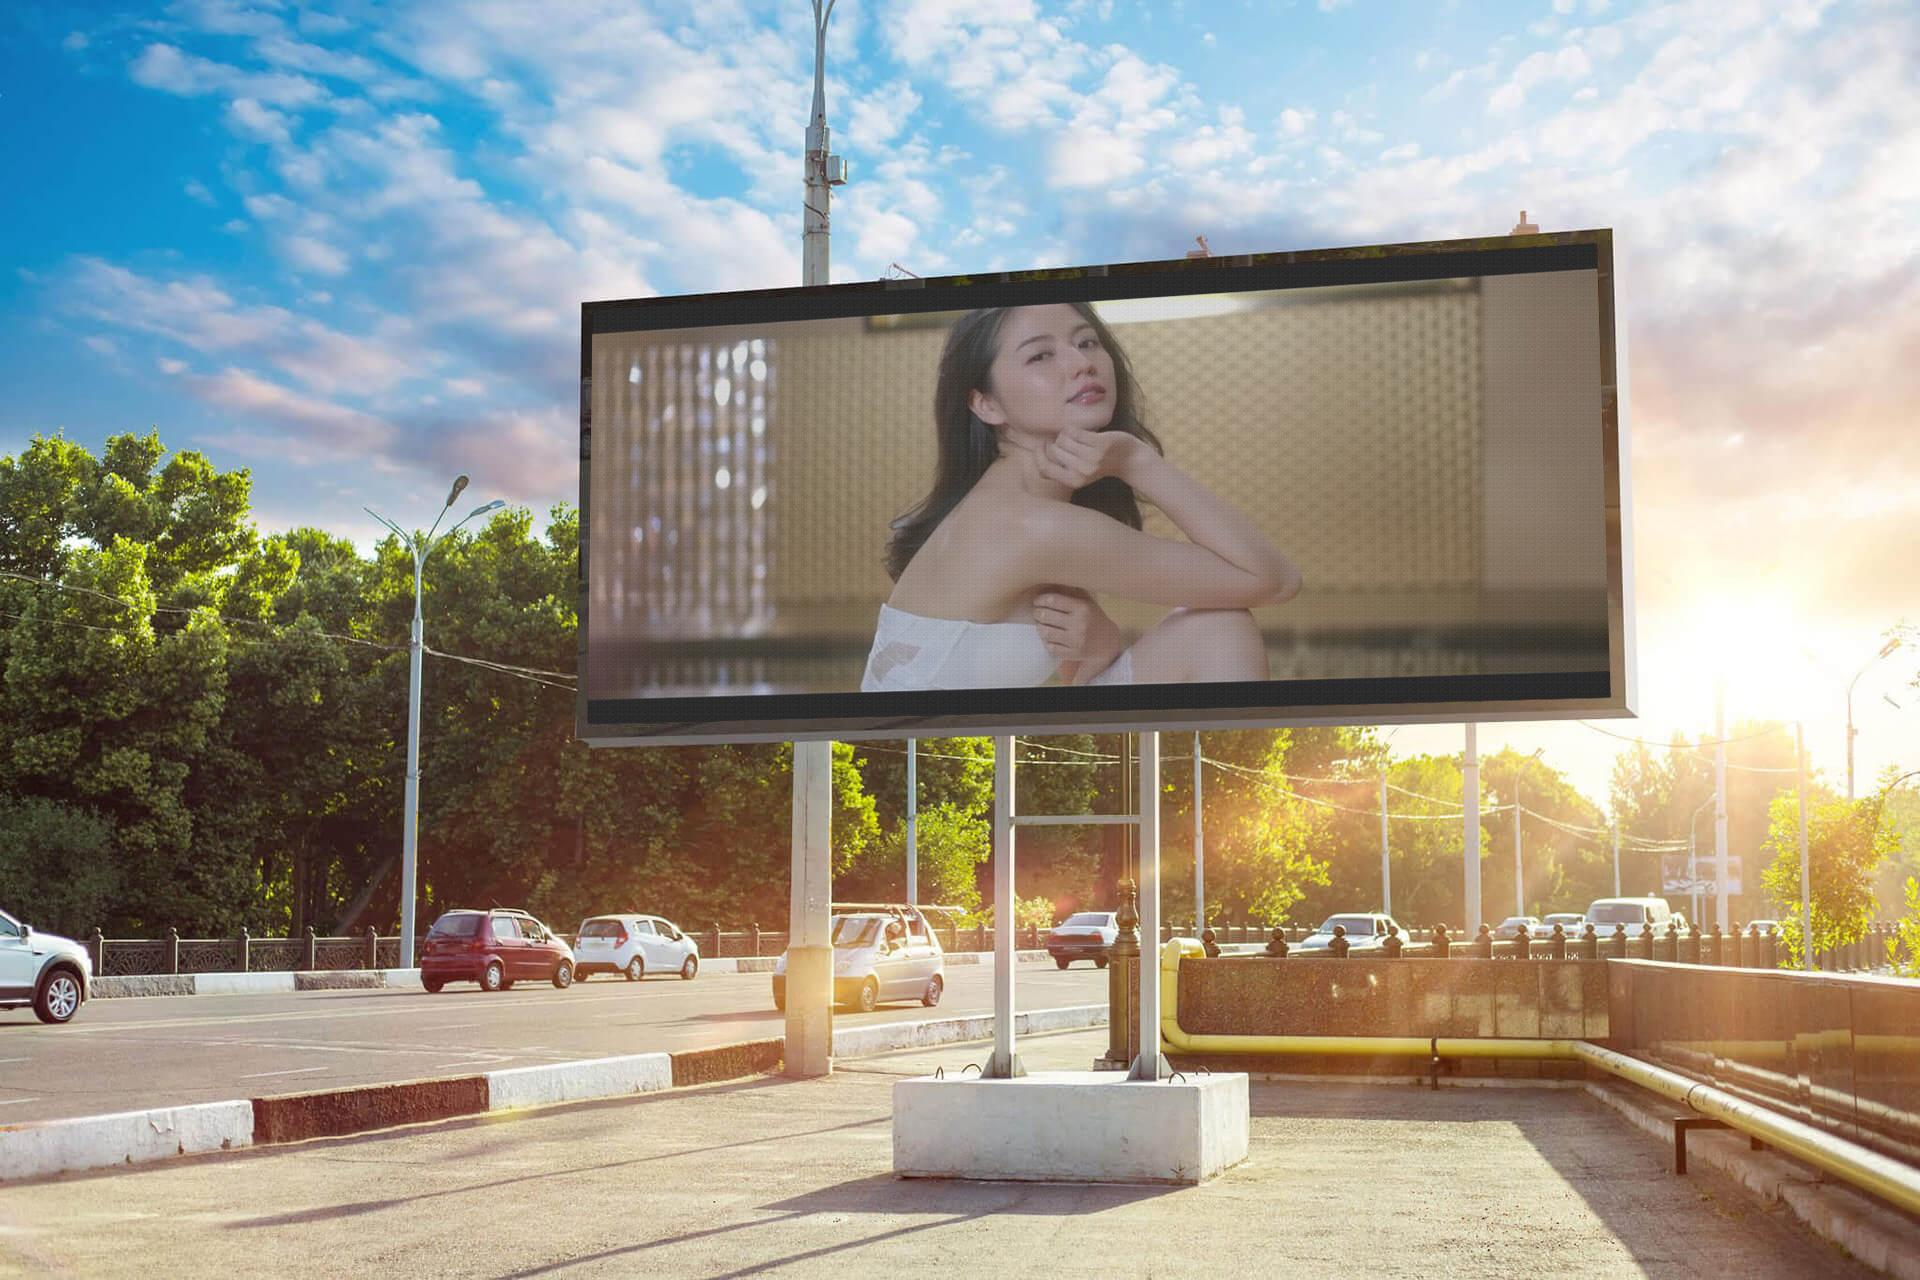 P4mm Outdoor LED Display SMD1921 High-Definition Performance LED Screen Video Wa 1